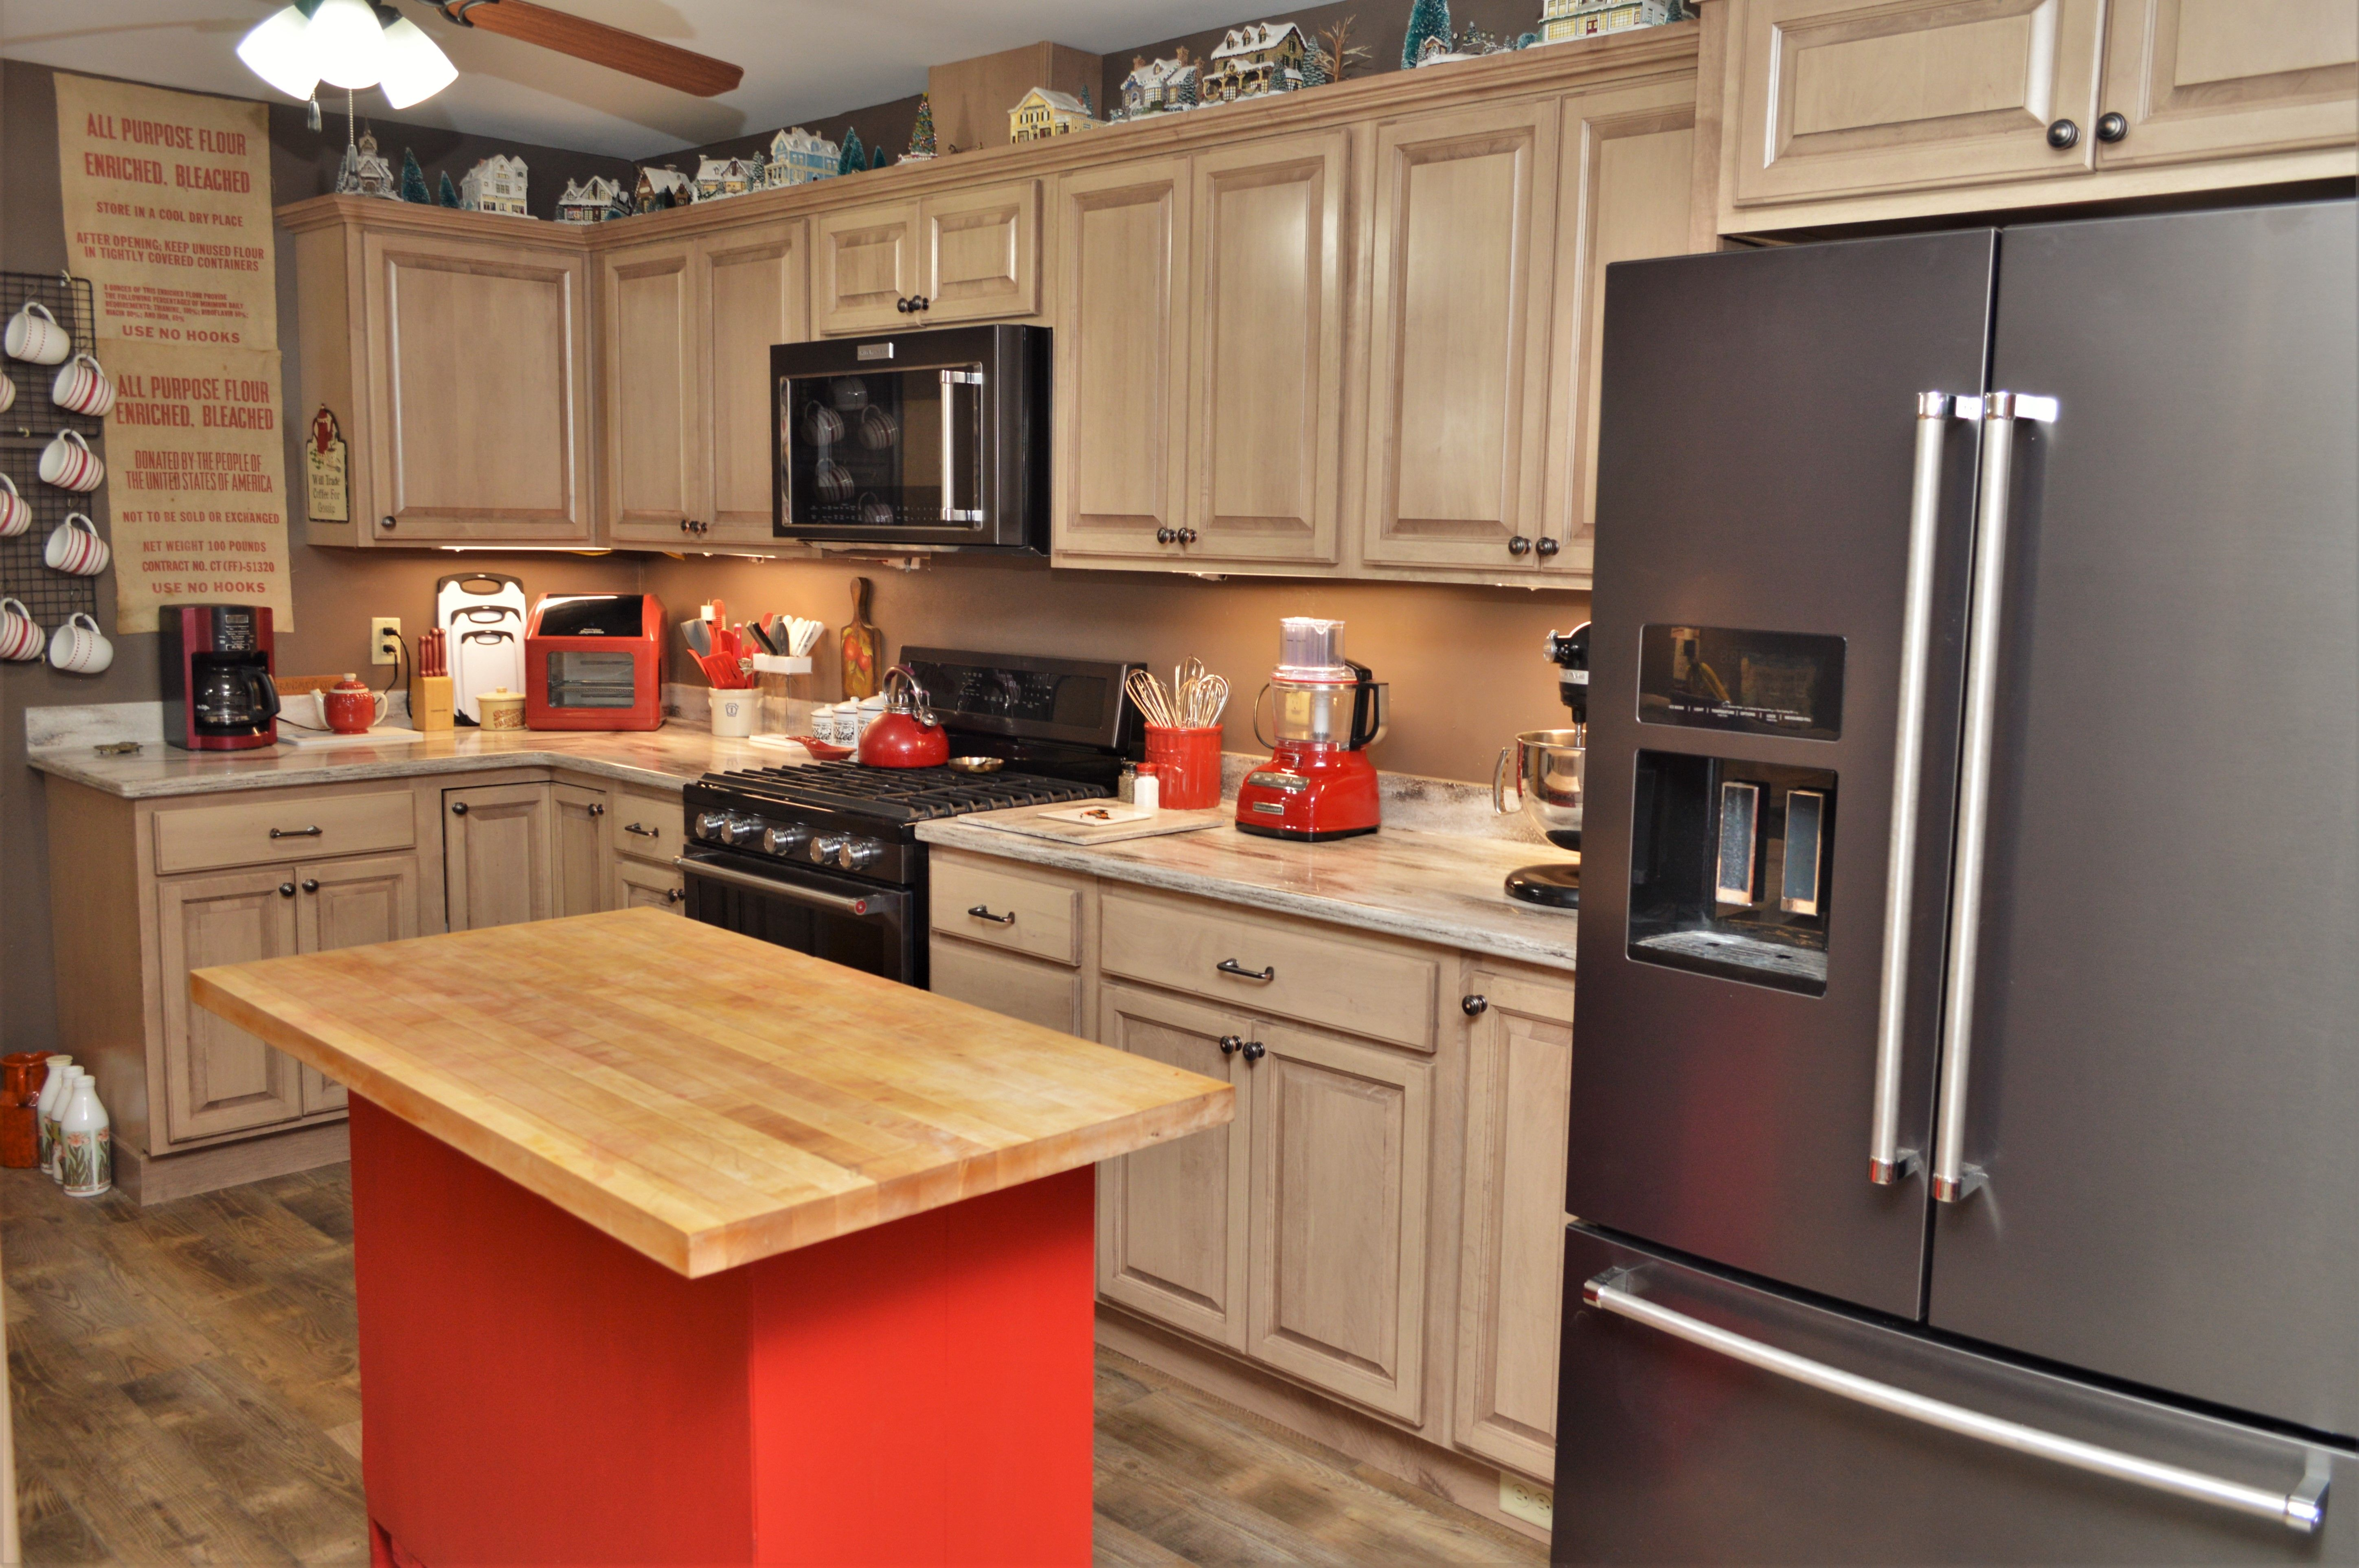 Bailey S Cabinets Haas Lifestyle Collection Maple Cottonwood Finish Liberty Square Door Style In 2020 Kitchen Kitchen Cabinets Cabinet